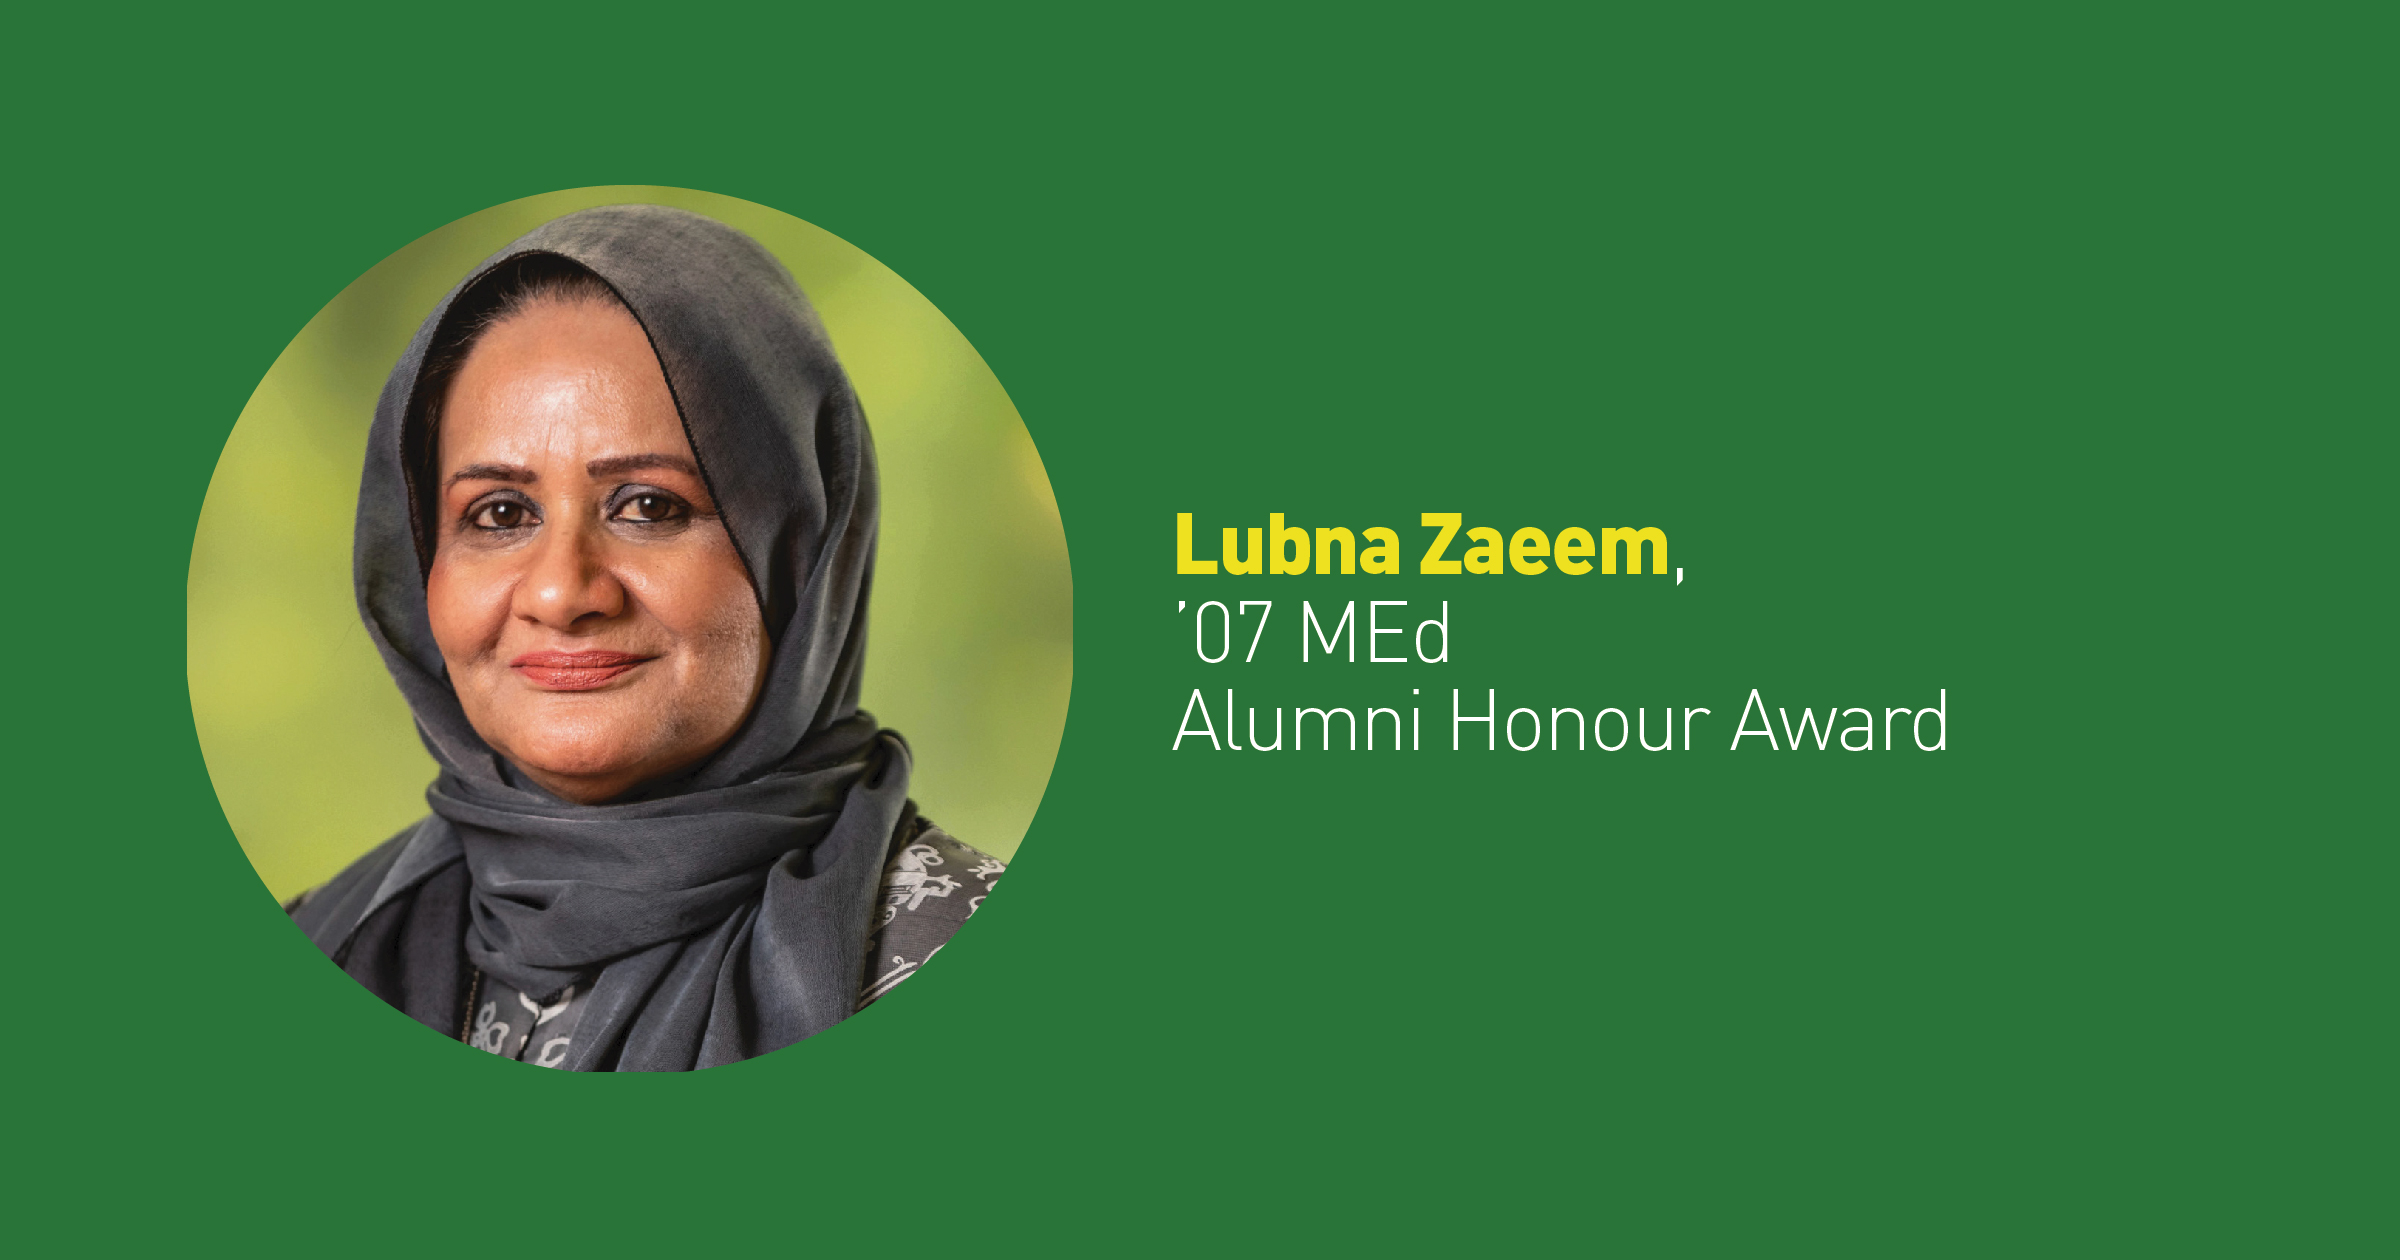 Alumni Honour winner helps ease stigma of counseling for Muslim immigrants